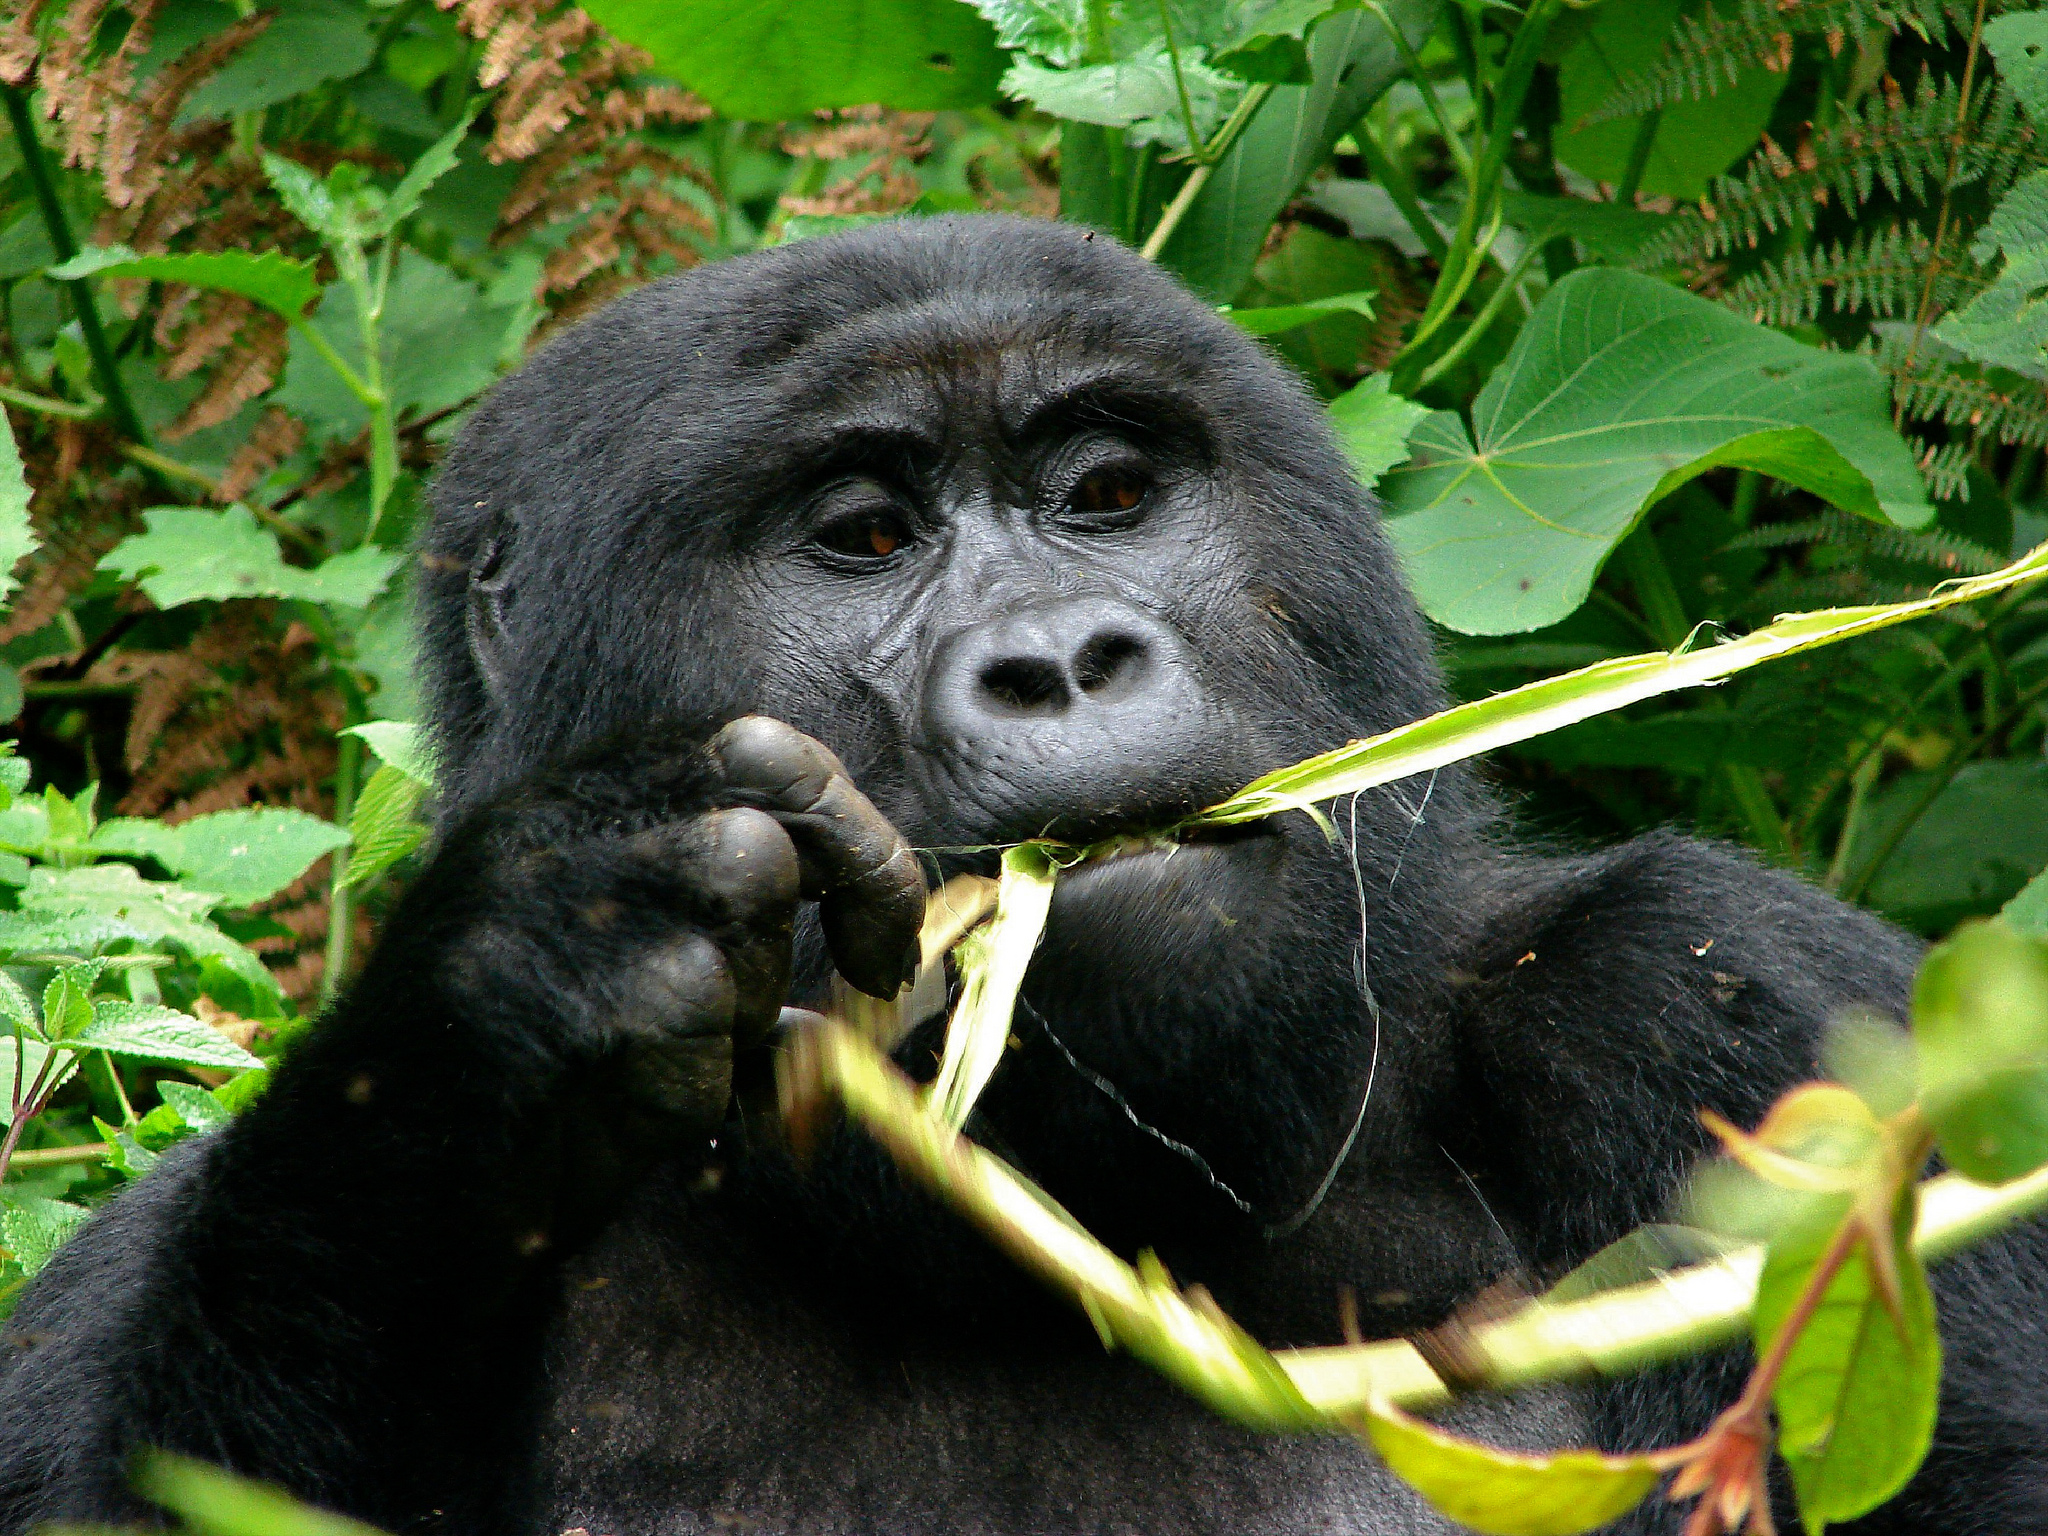 Taste for gorilla and chimp meat fuels illicit trade